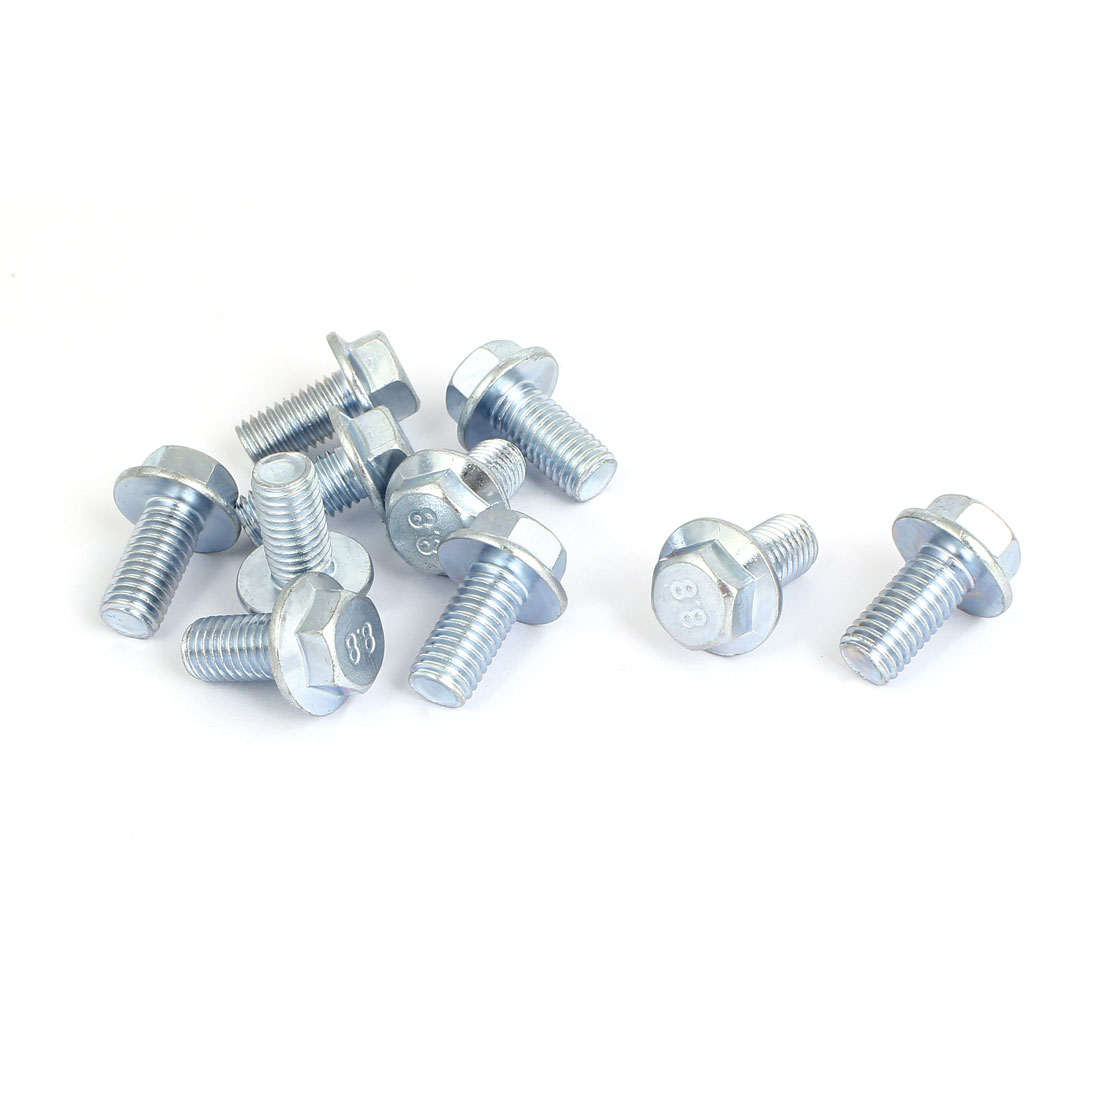 M10x20mm Grade 8.8 Metric Serrated Hex Flange Screws Bolts 10pcs